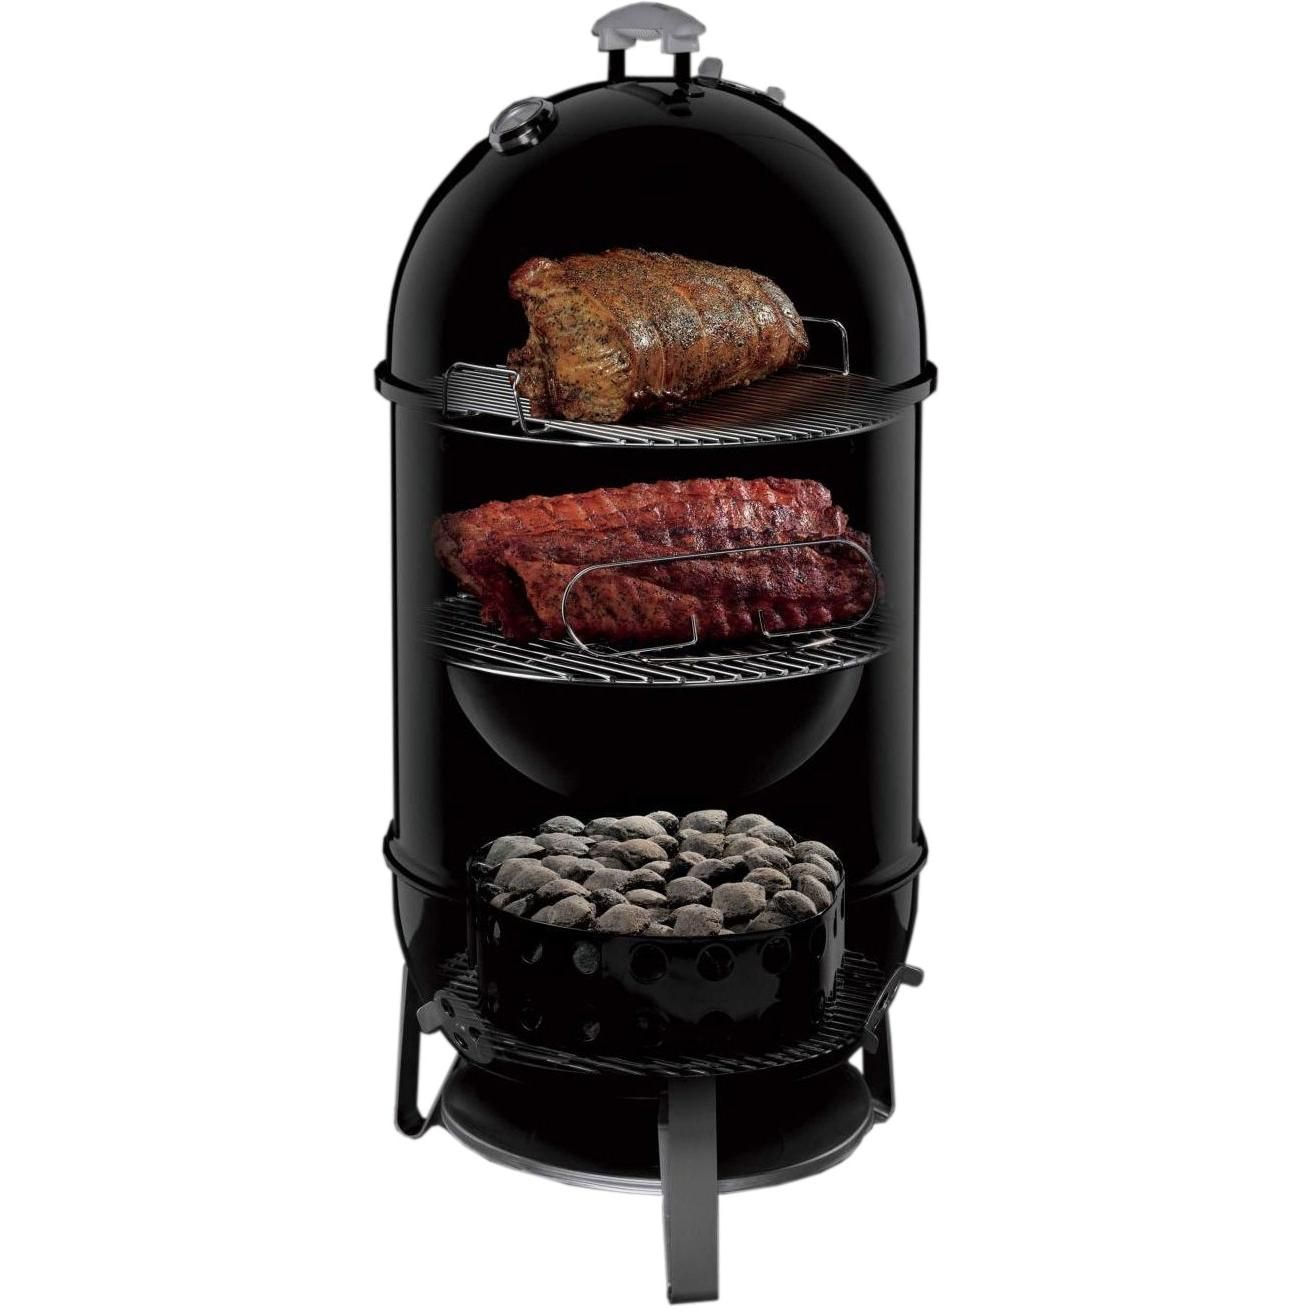 weber 18 1 2 inch smokey mountain cooker charcoal smoker 39 q time pinterest smokers. Black Bedroom Furniture Sets. Home Design Ideas